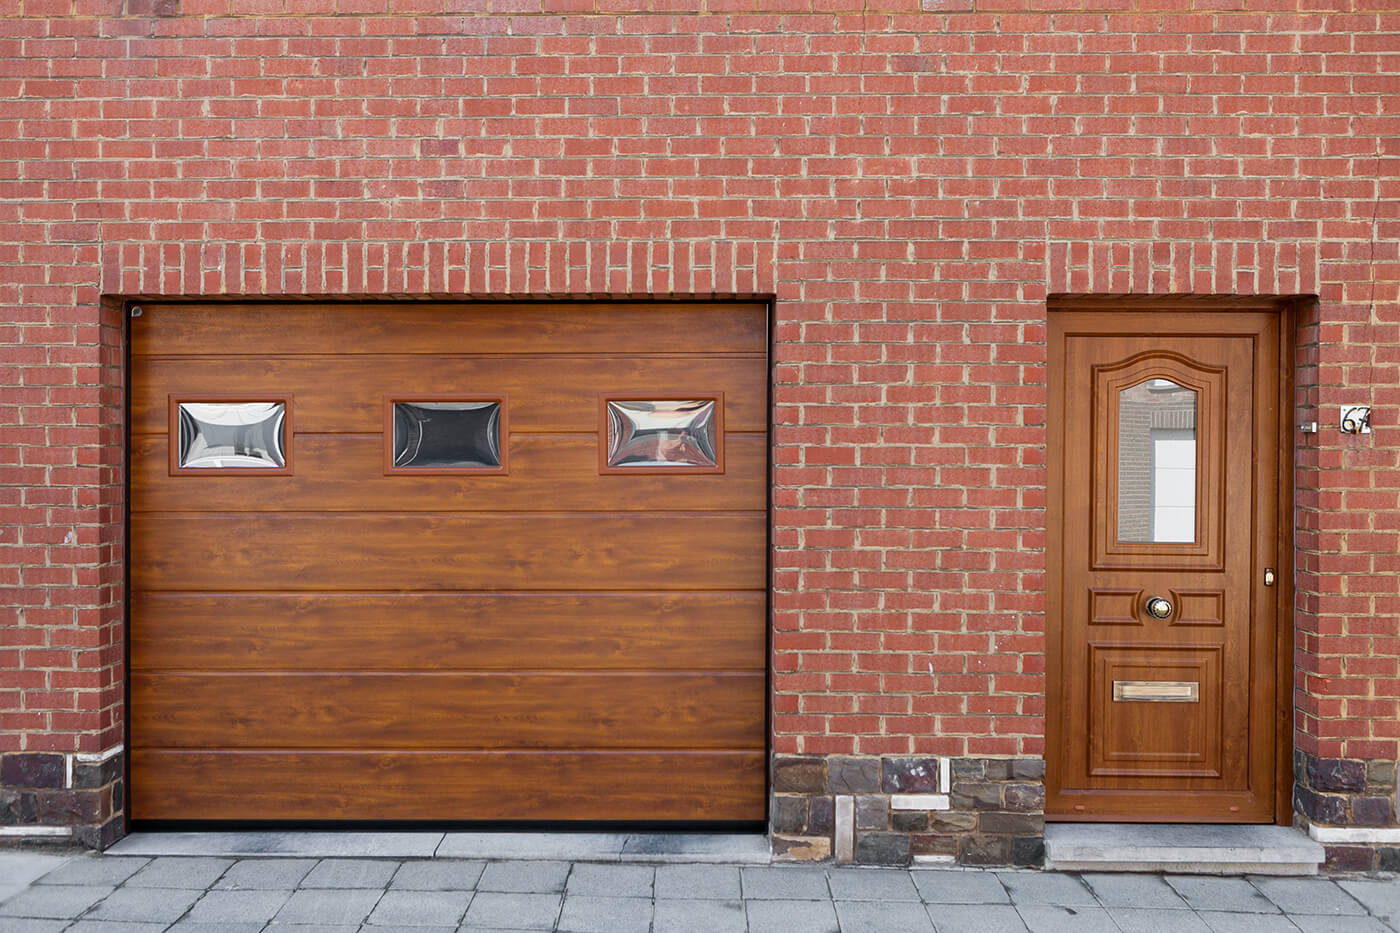 Made-to-measure sectional garage door - Raposo Charleroi, Image n°2